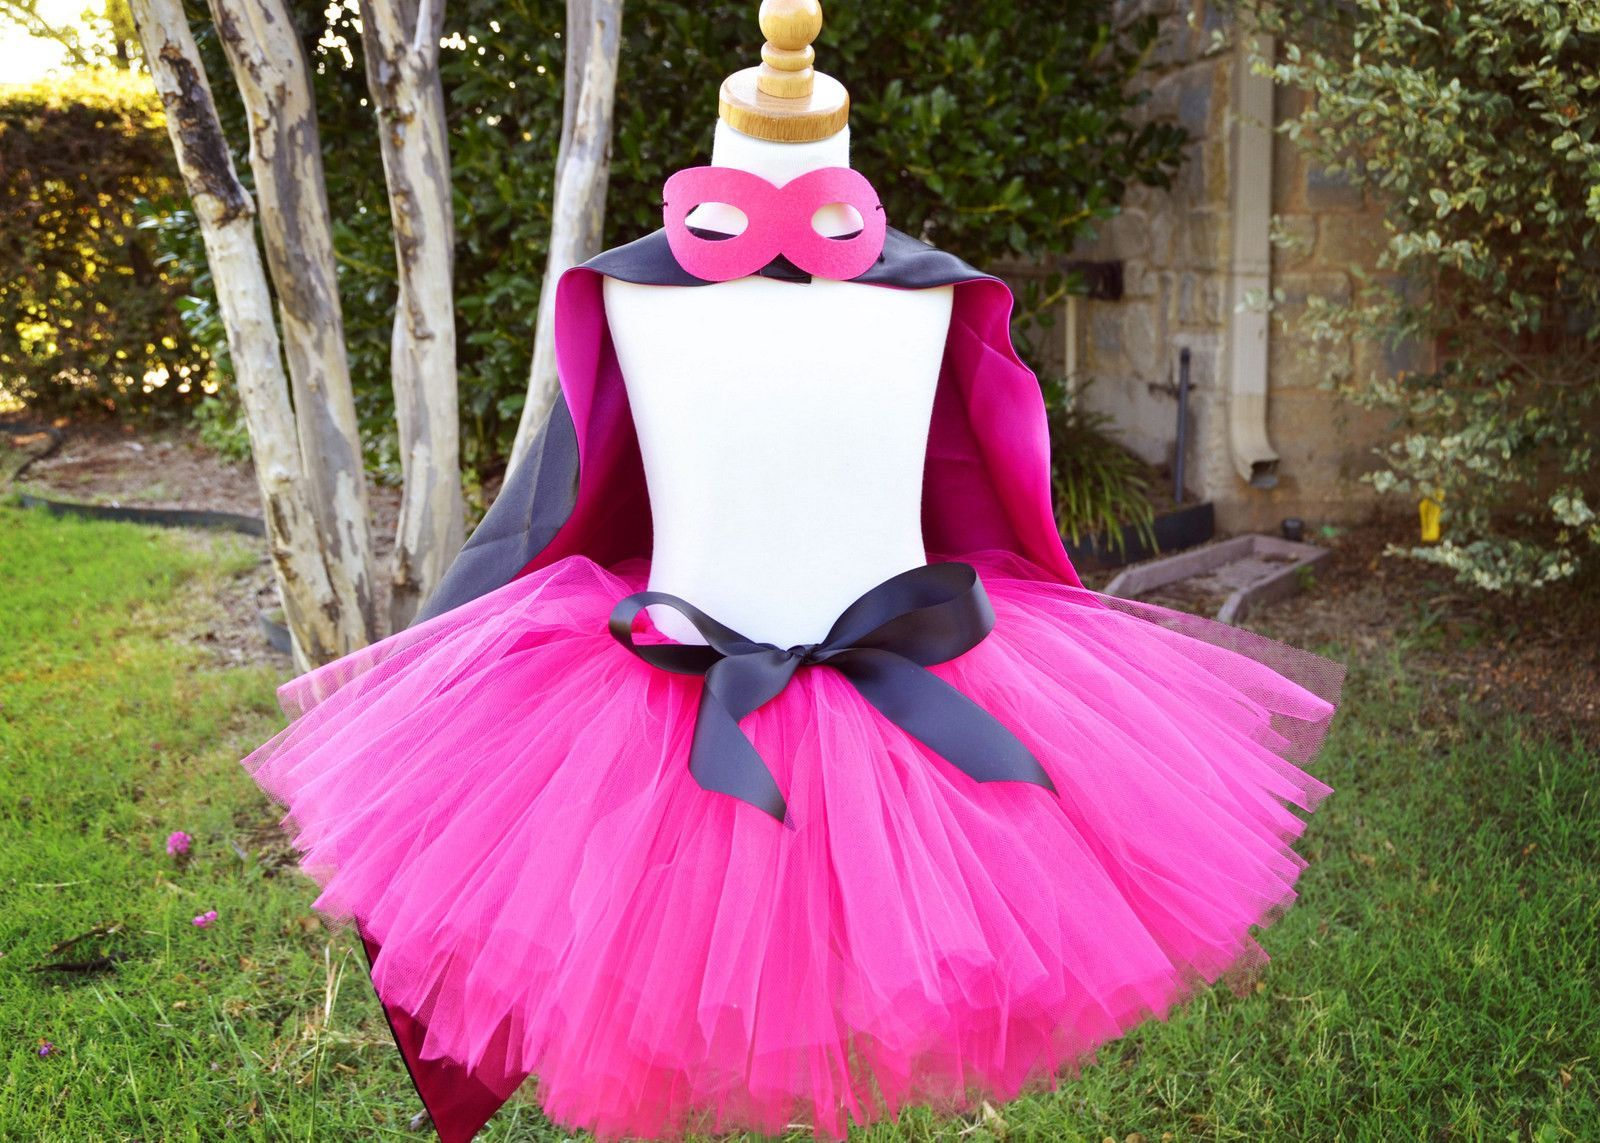 Save some money and do it yourself with this all inclusive kit save some money and do it yourself with this all inclusive kit that includes everything you need to make this darling tutu set diy kit comes with each of solutioingenieria Choice Image